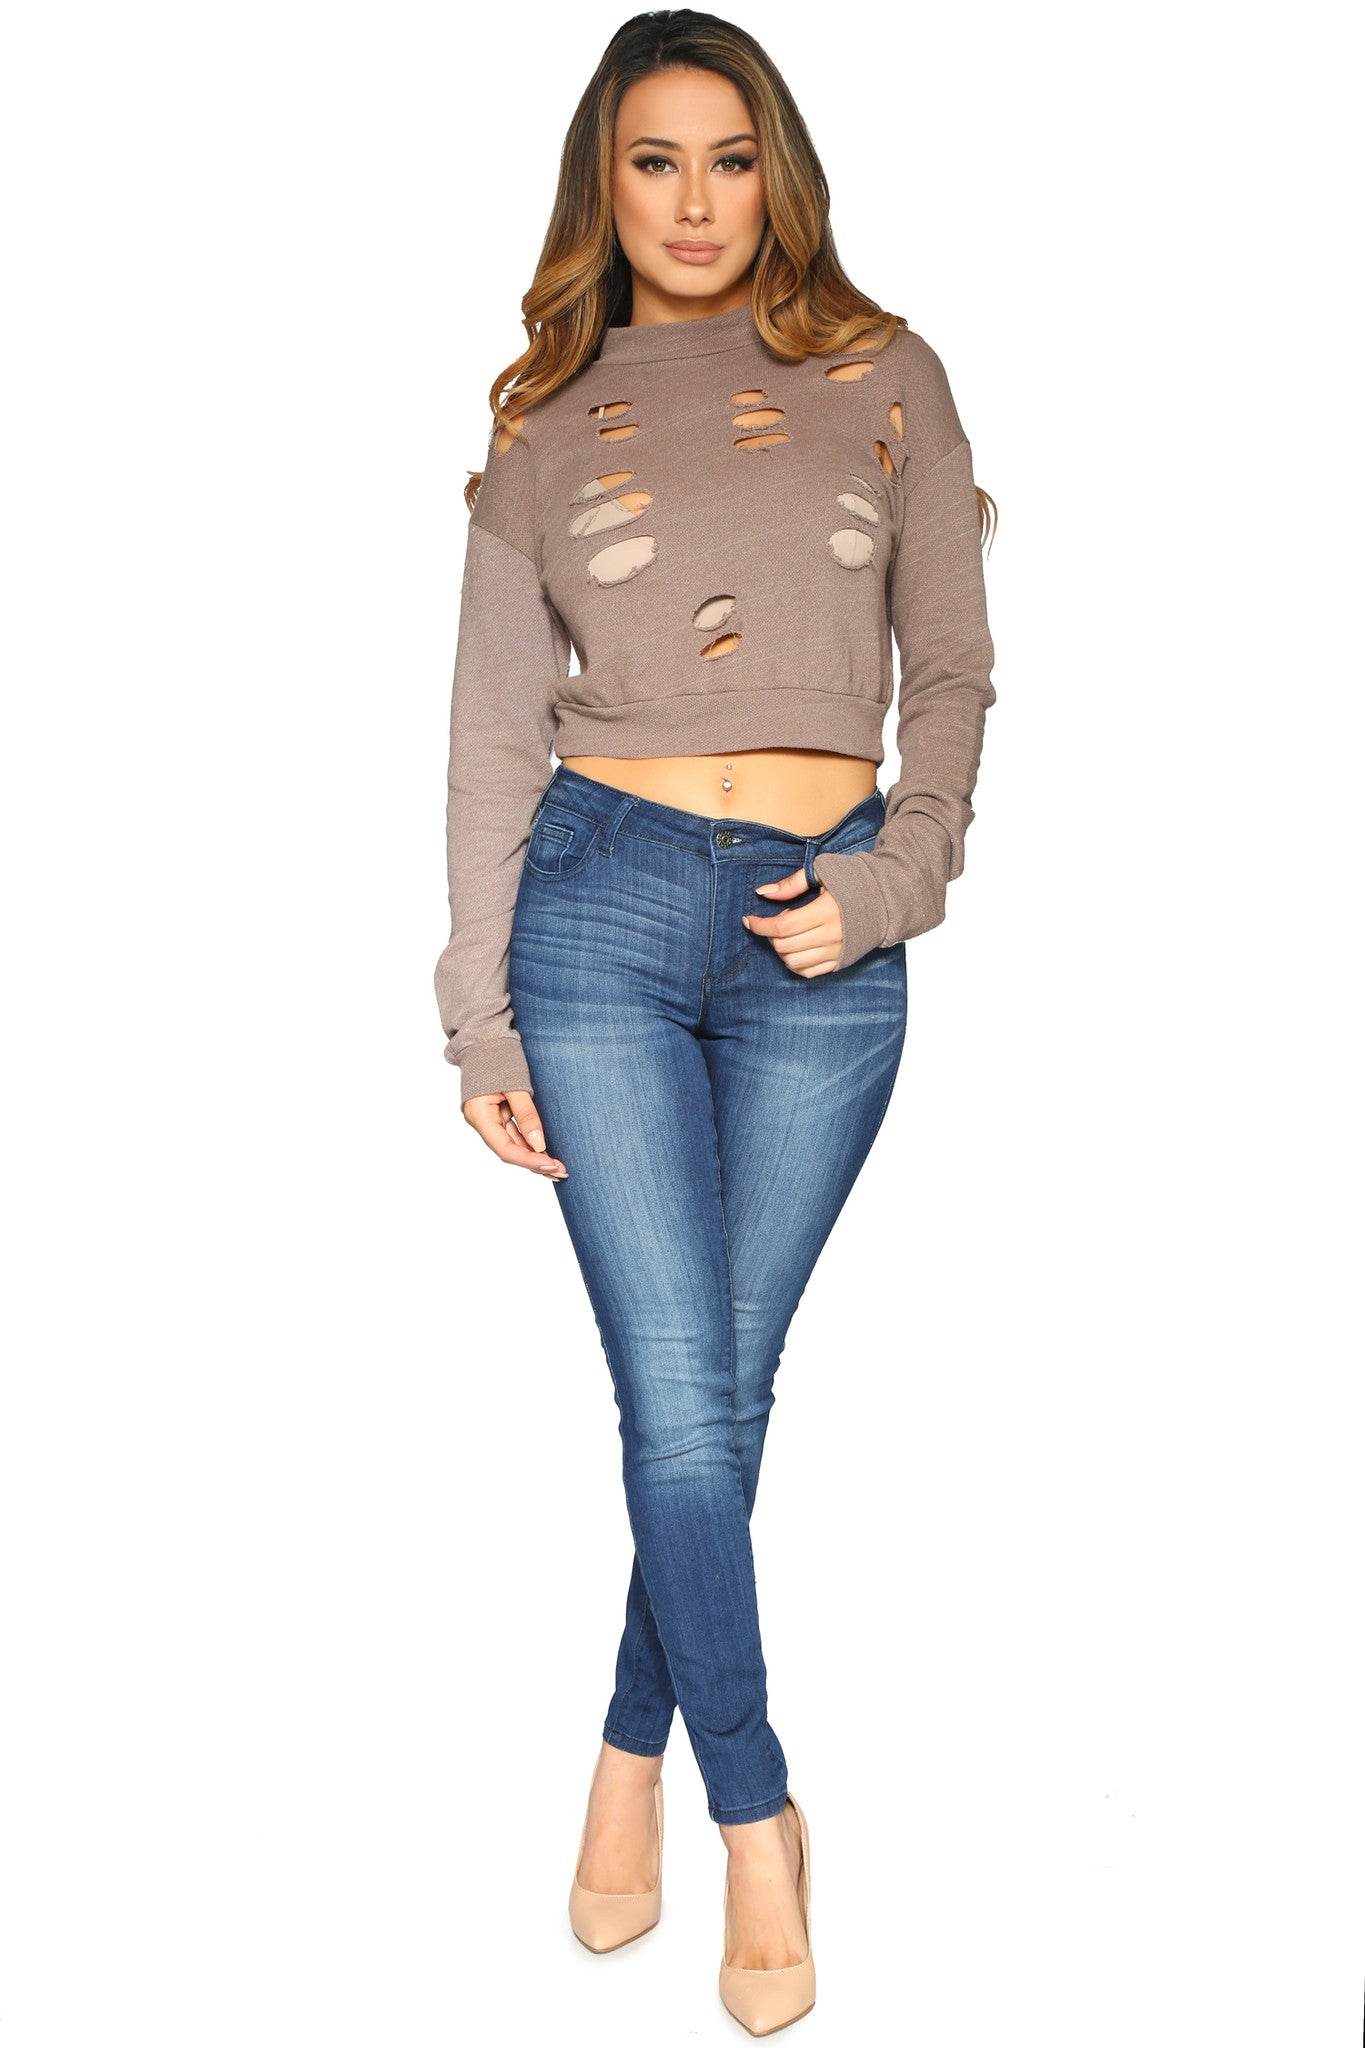 DESIE CROP SWEATER MOCHA GLAM ENVY FRONT PROFILE